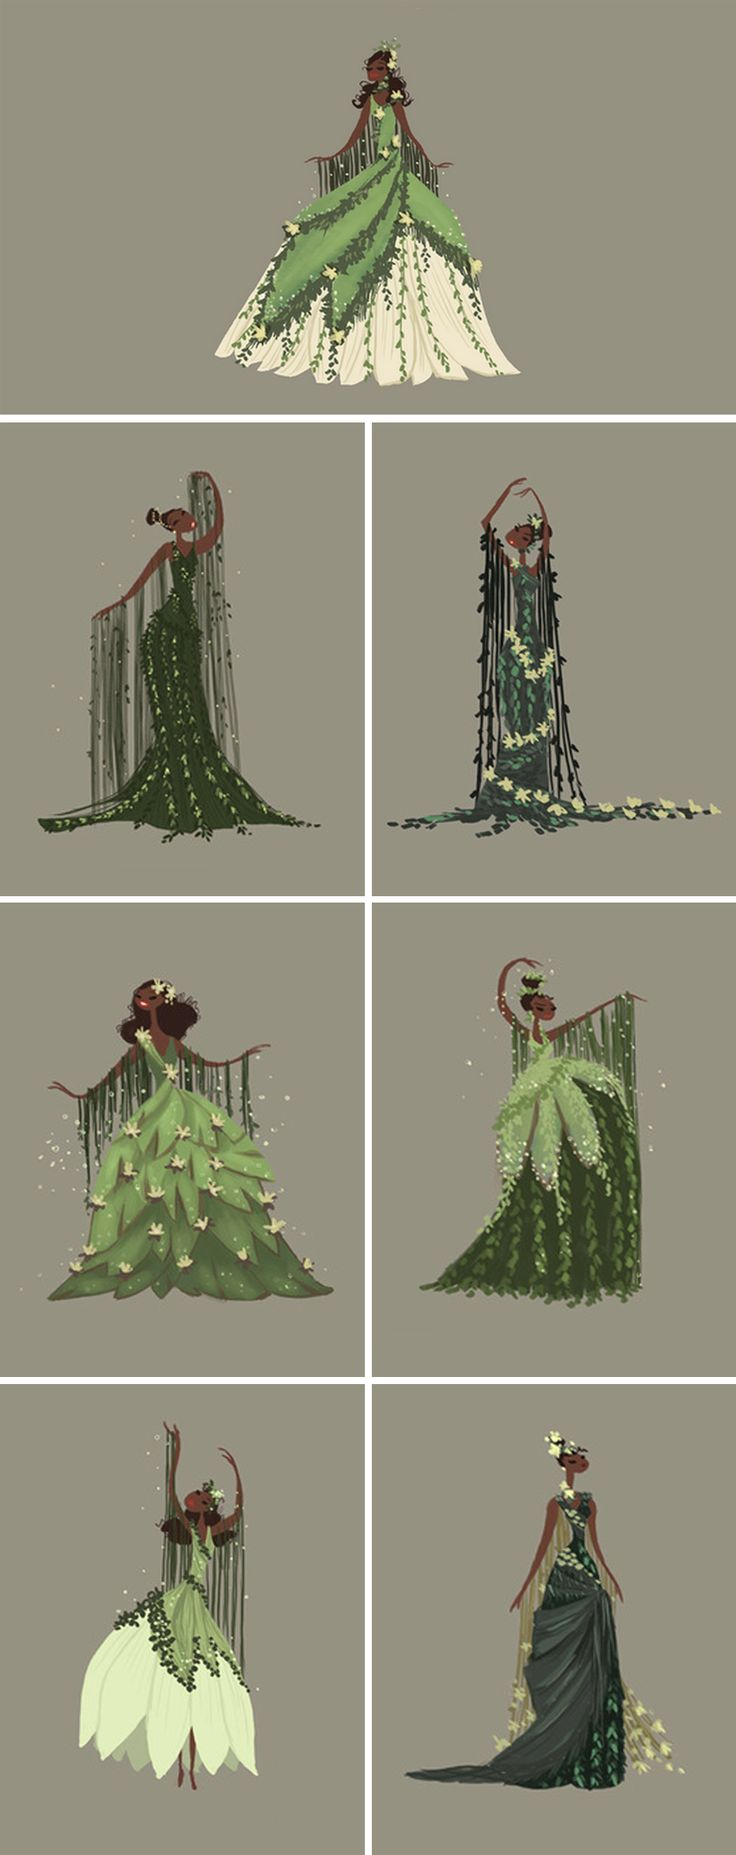 Costume Designs from The Princess and the Frog by Lorelay Bove